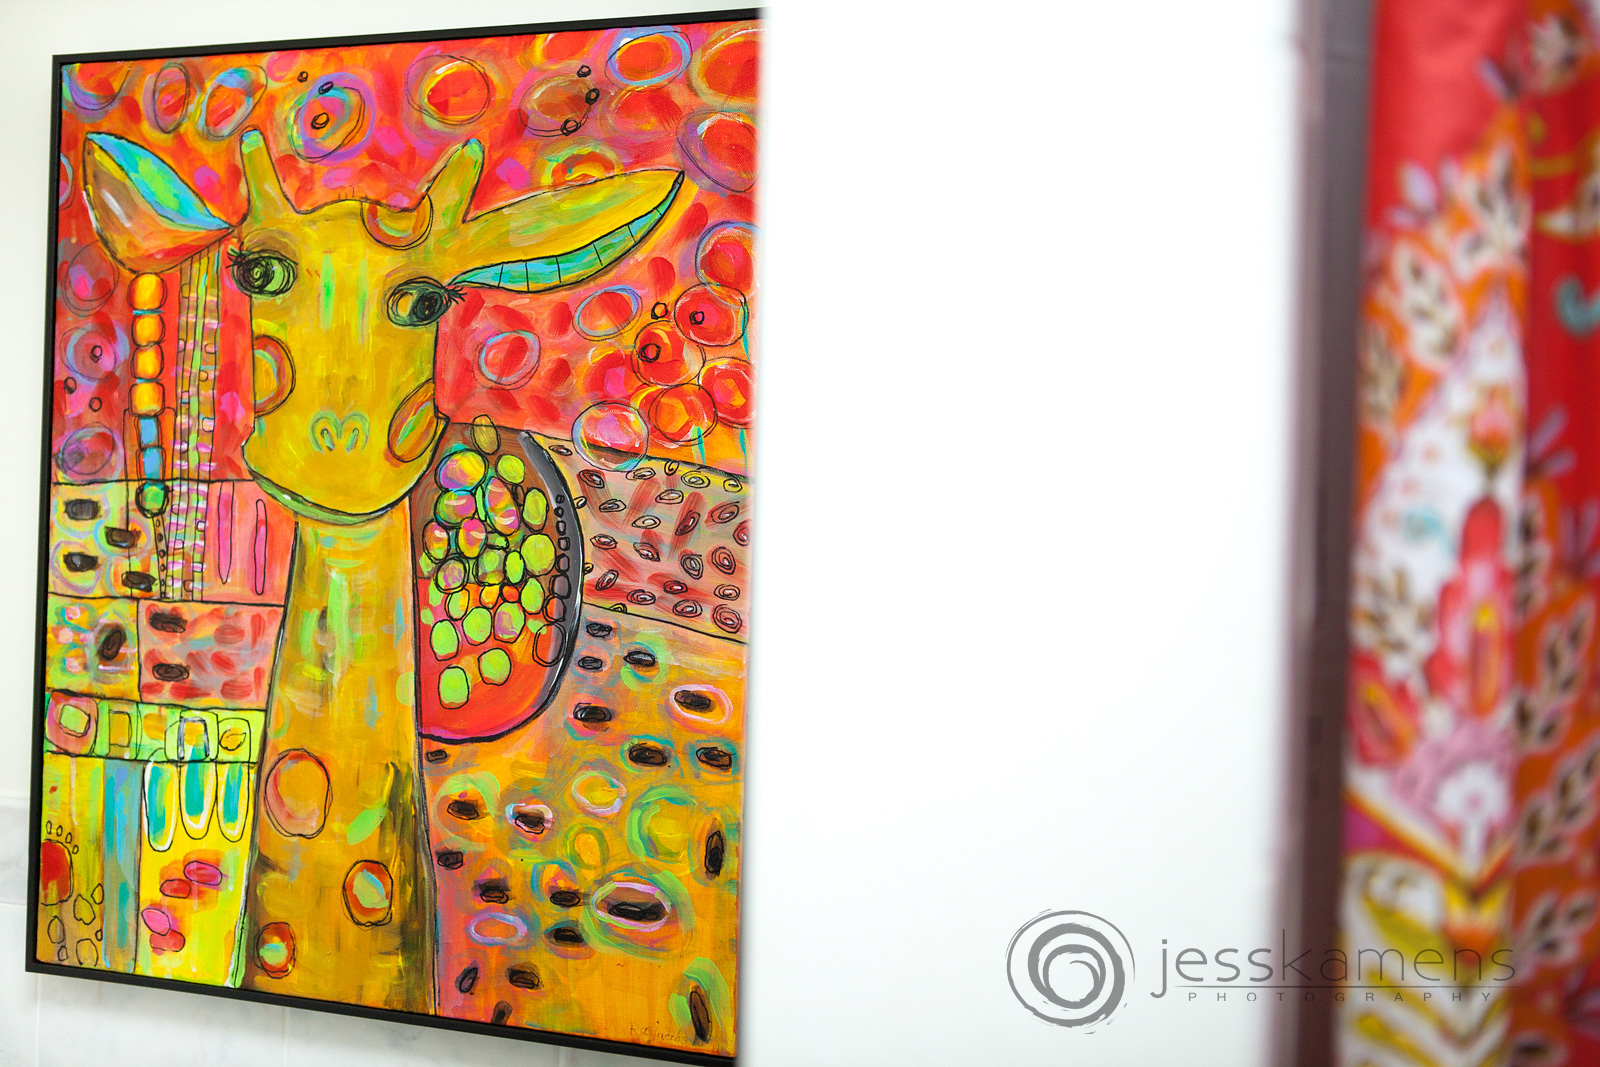 a painting of a giraffe using mainly warm colors by Renée A. Schuls-Jacobson